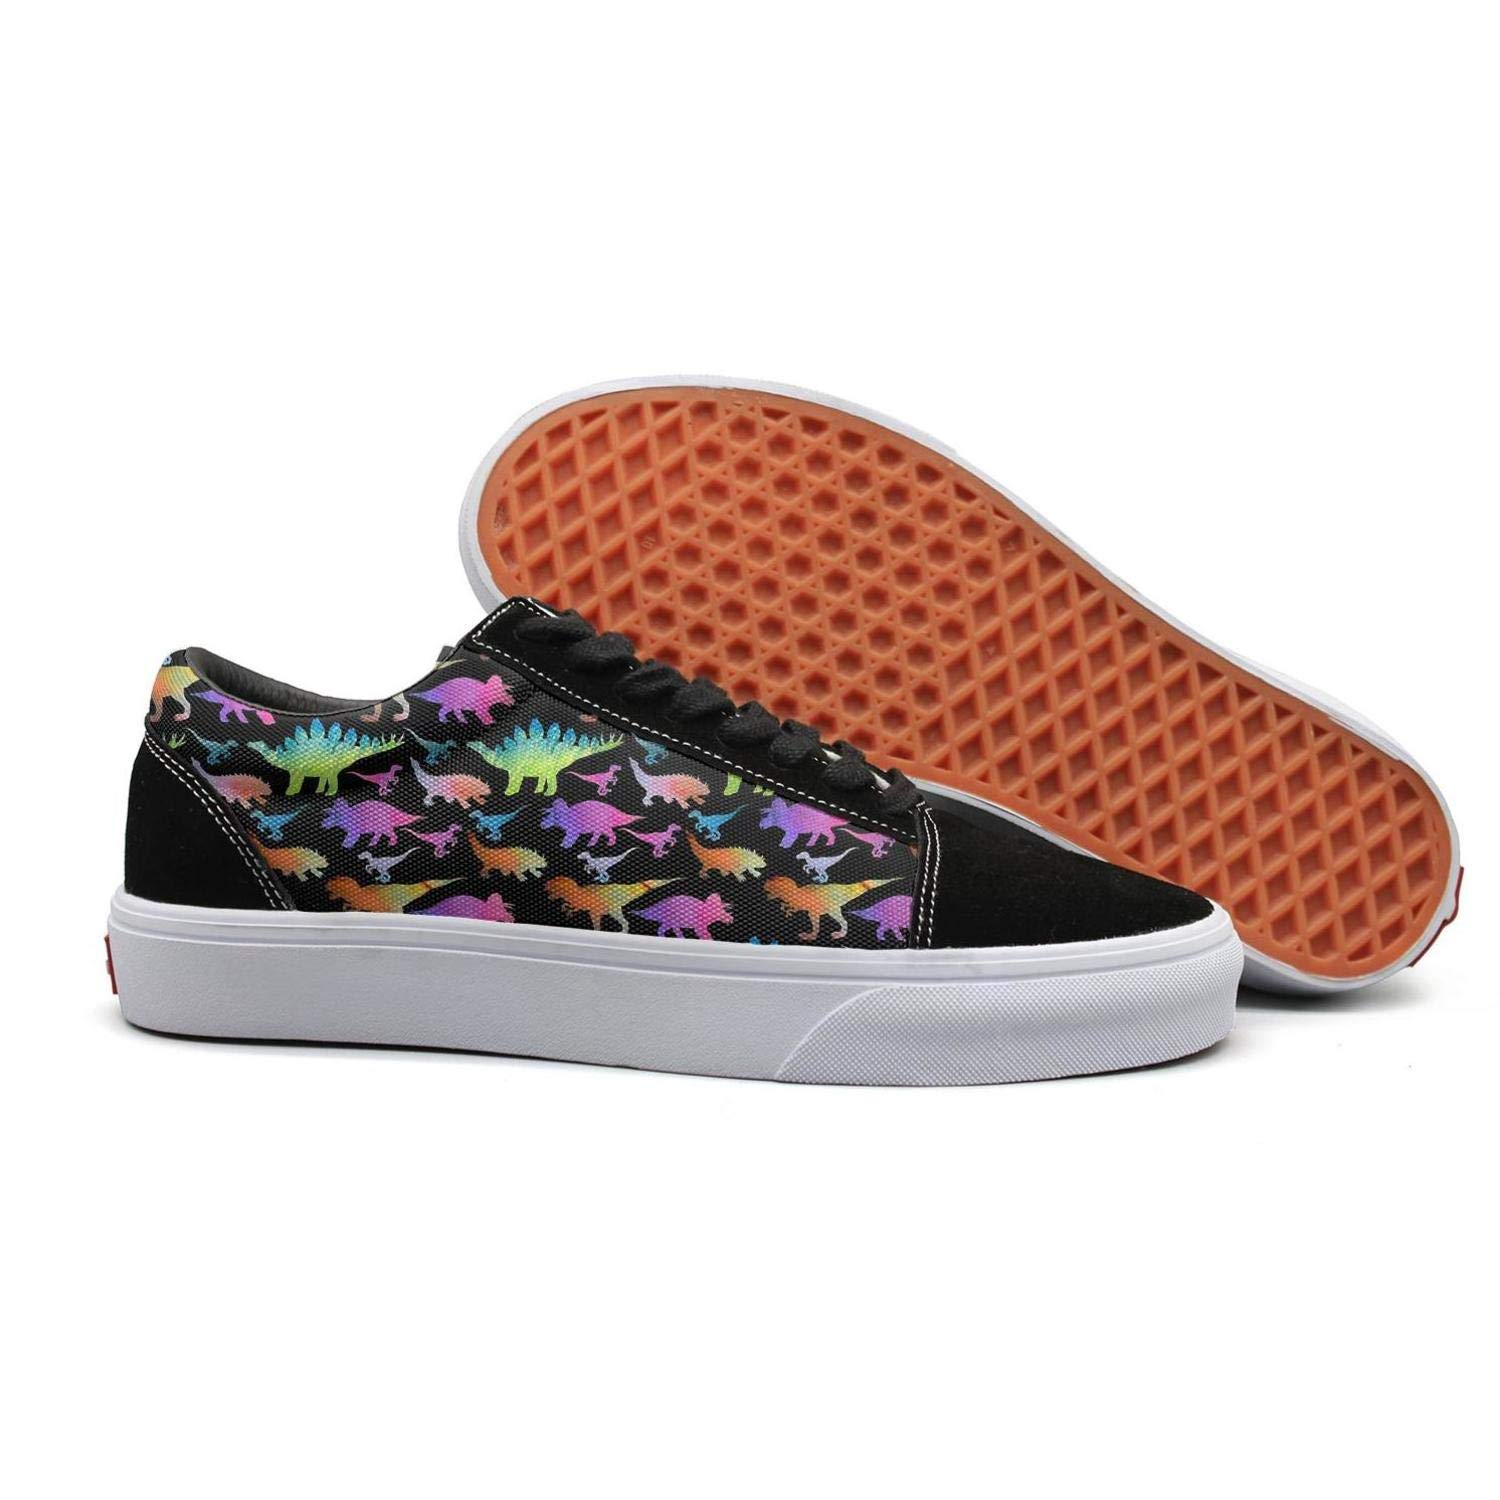 Armsttm Women Skate Shoes The Dinosaurs Dinosaur Art Classic Suede Sneaker Skating Shoes